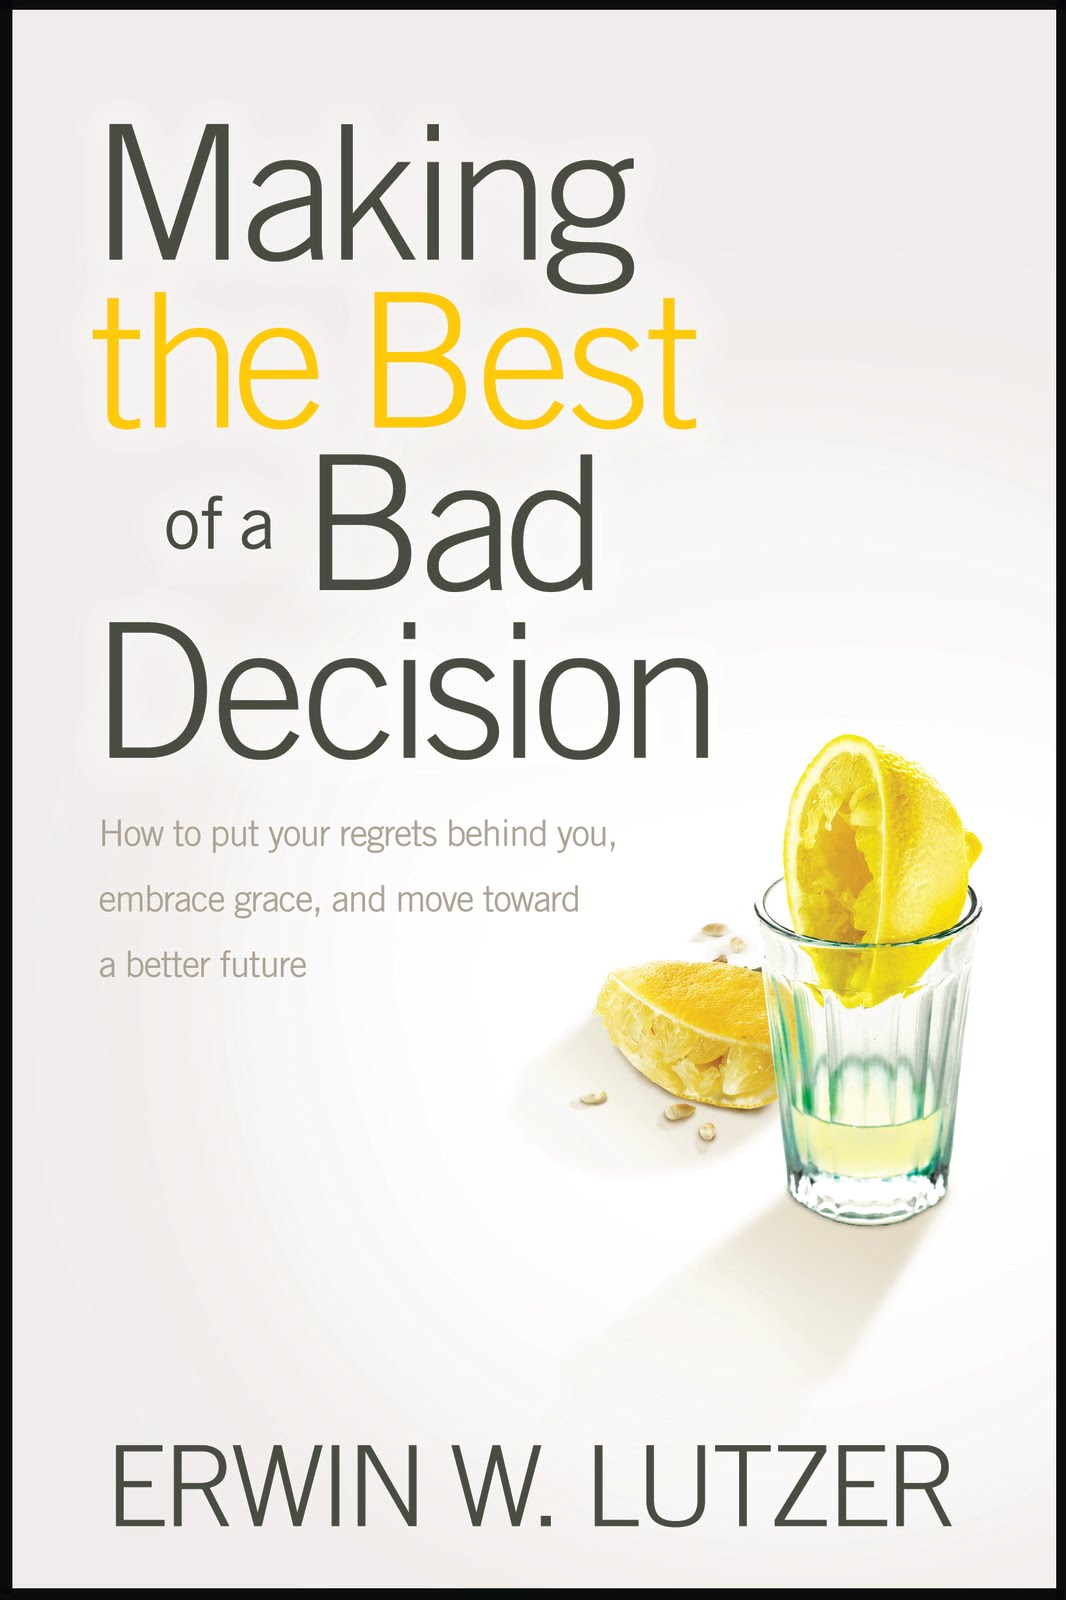 making bad choices essay Every choice has its consequences good or bad we all live due to the decisions we make each and every day  making process by making choices that are fact based .